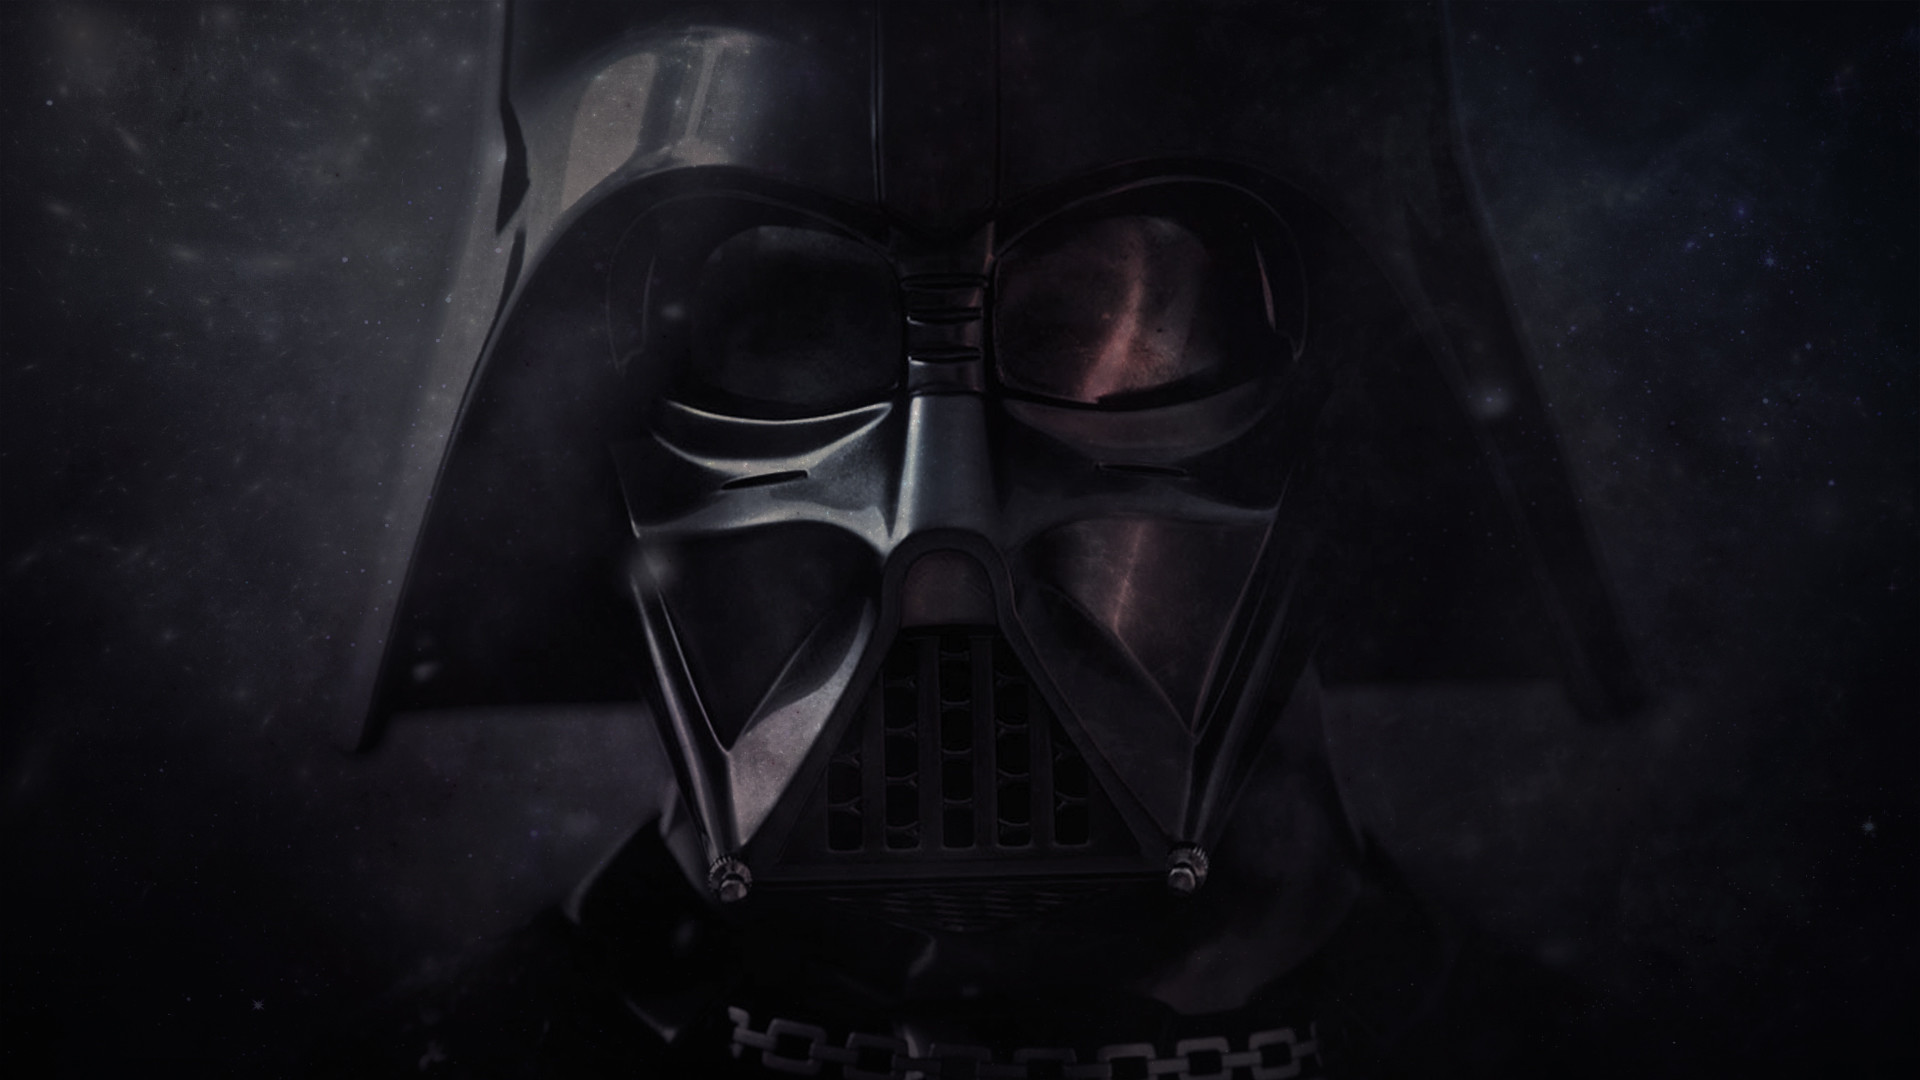 Darth Vader Live Wallpaper Android Apps on Google Play